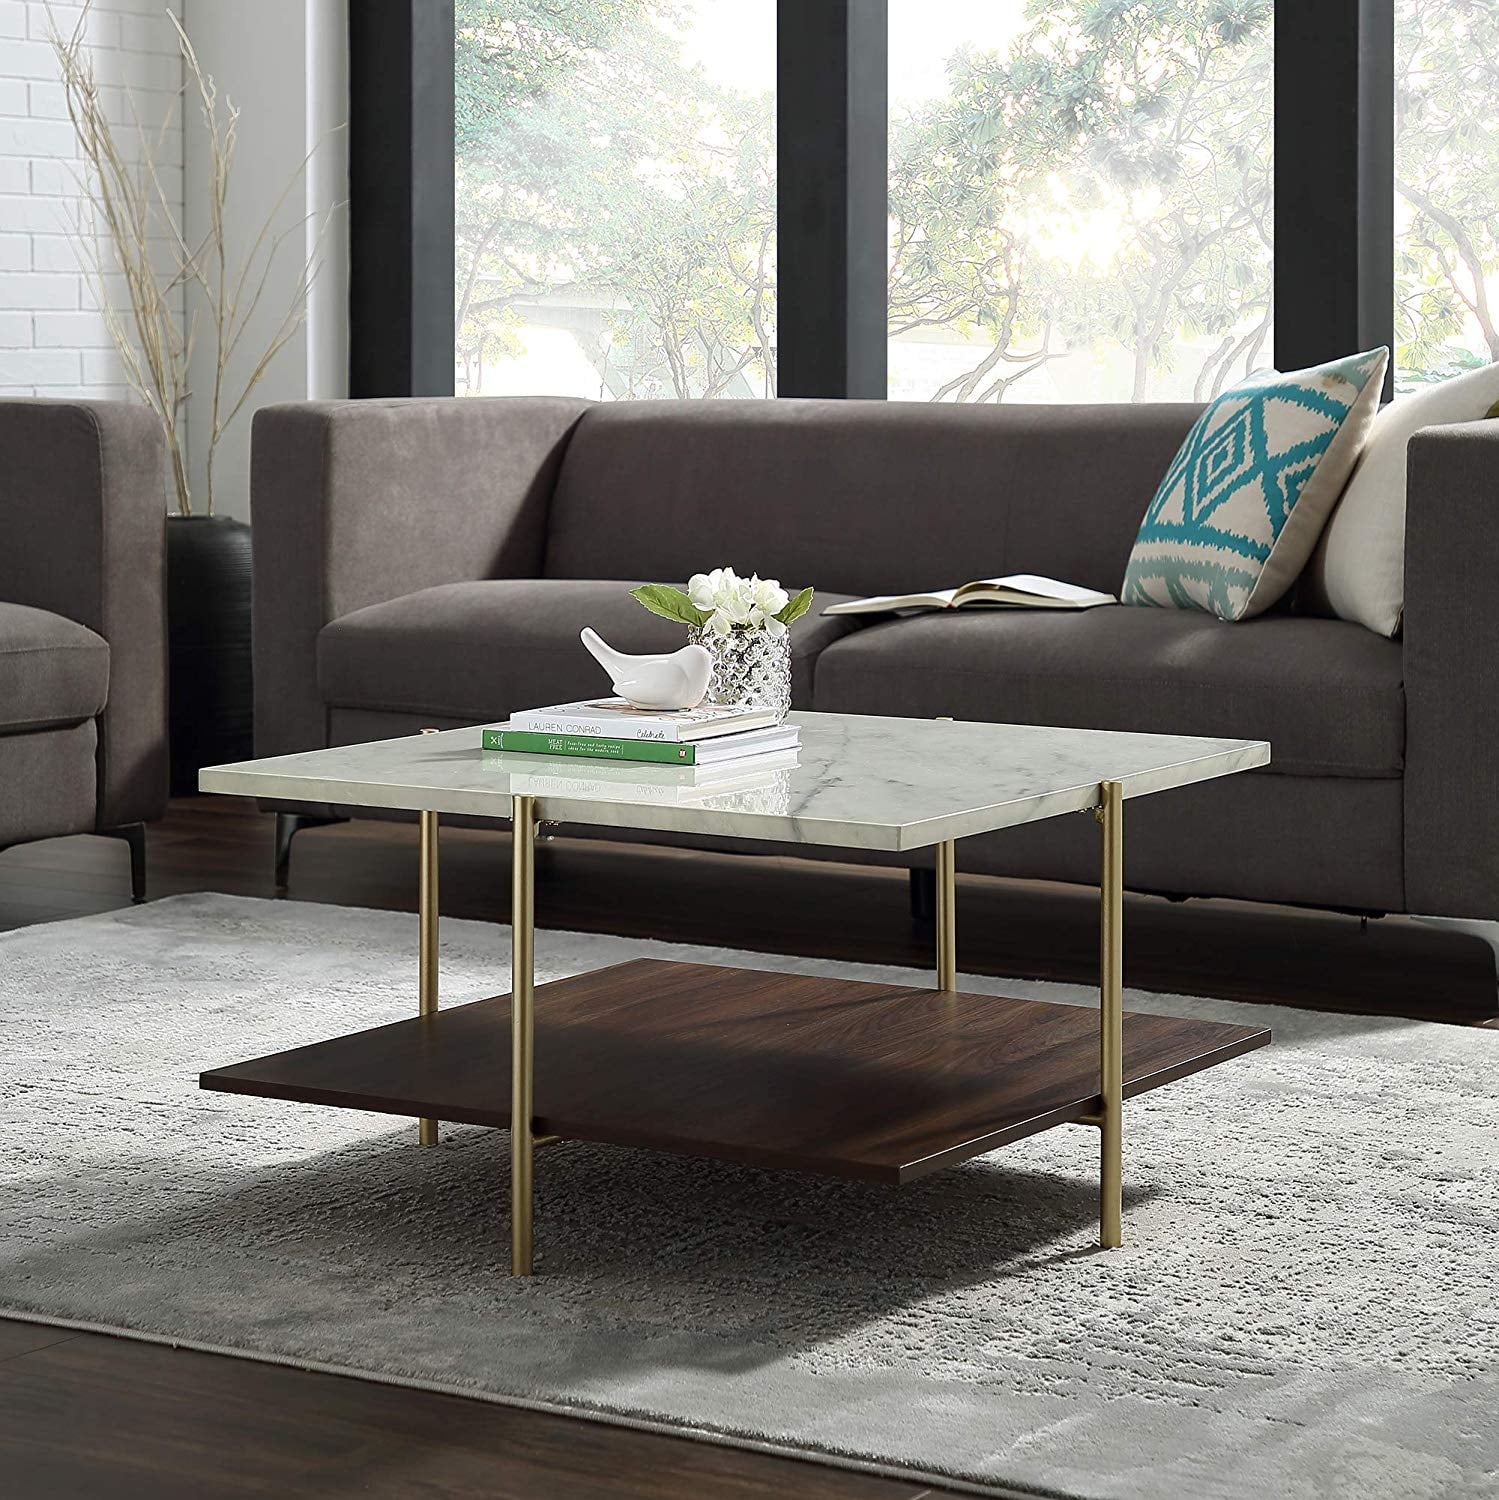 WE Furniture Coffee Table | Time For a Living Room Upgrade ...